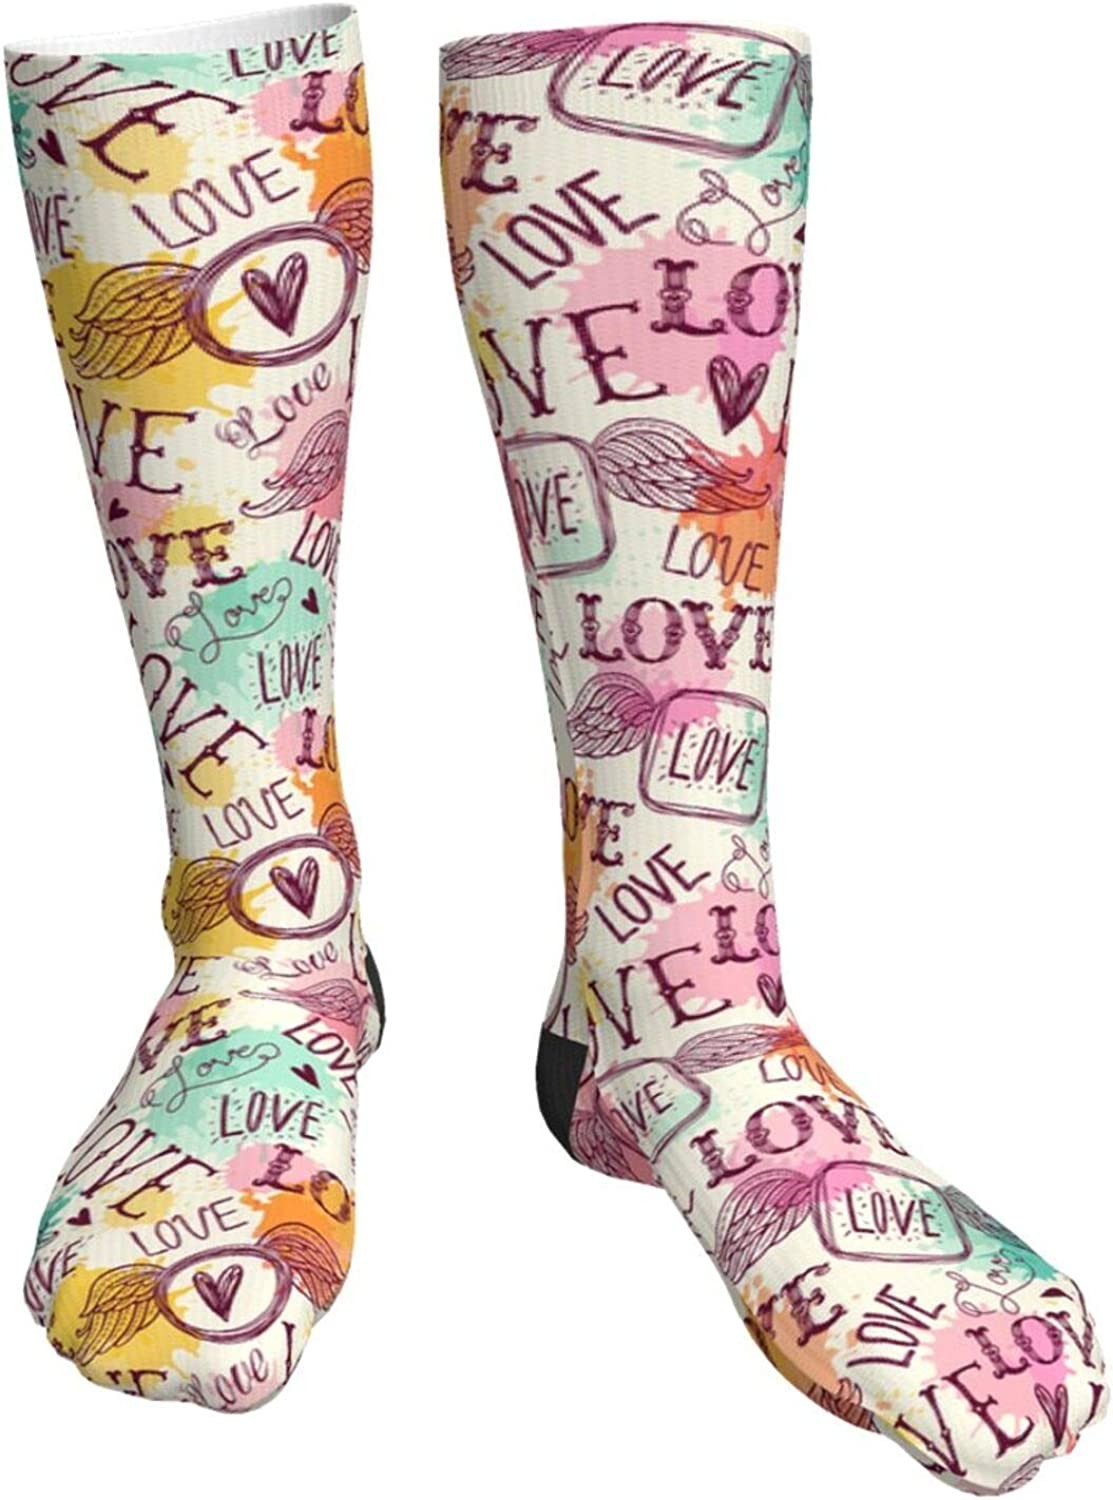 Hearts Max High material 61% OFF Dots Lines Stars Novelty Crazy High Tube Knee Socks Crew